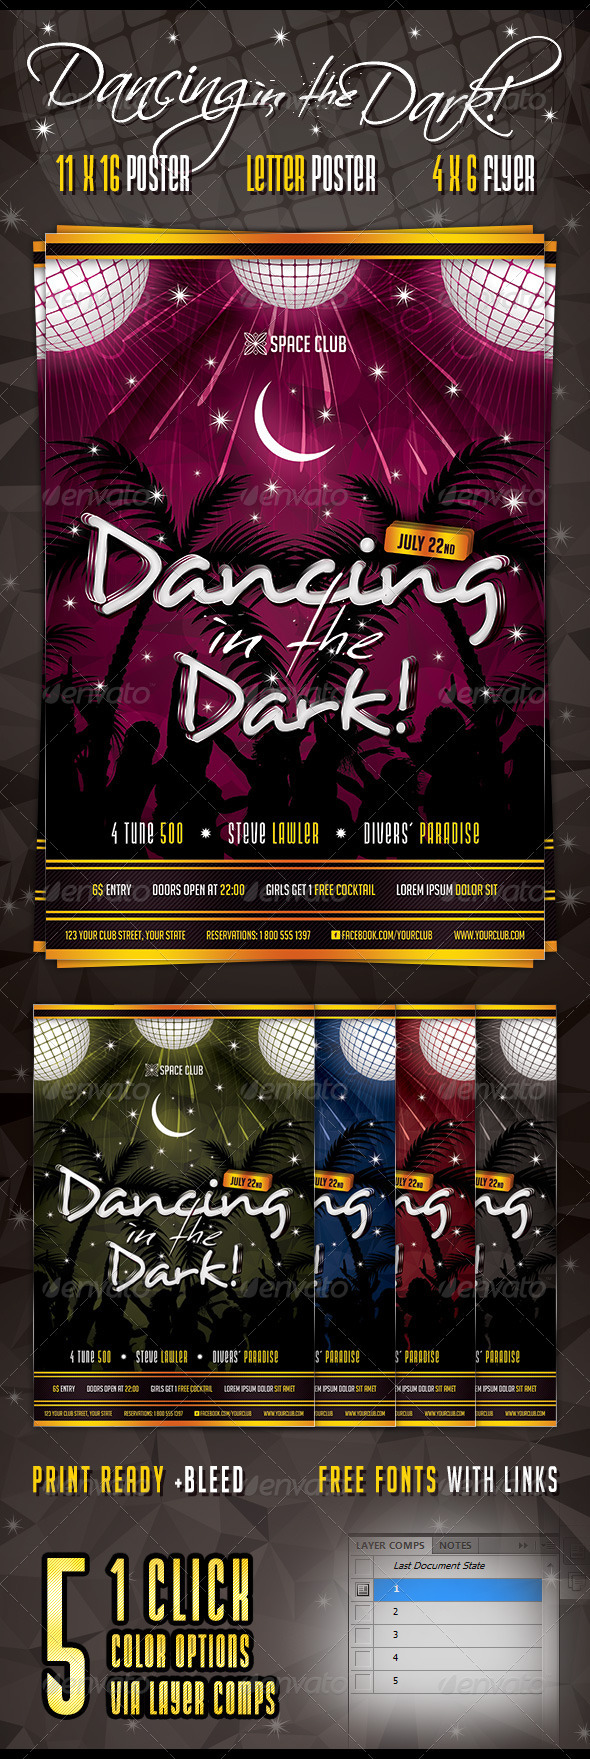 Dancing in the Dark Poster & Flyer - Clubs & Parties Events